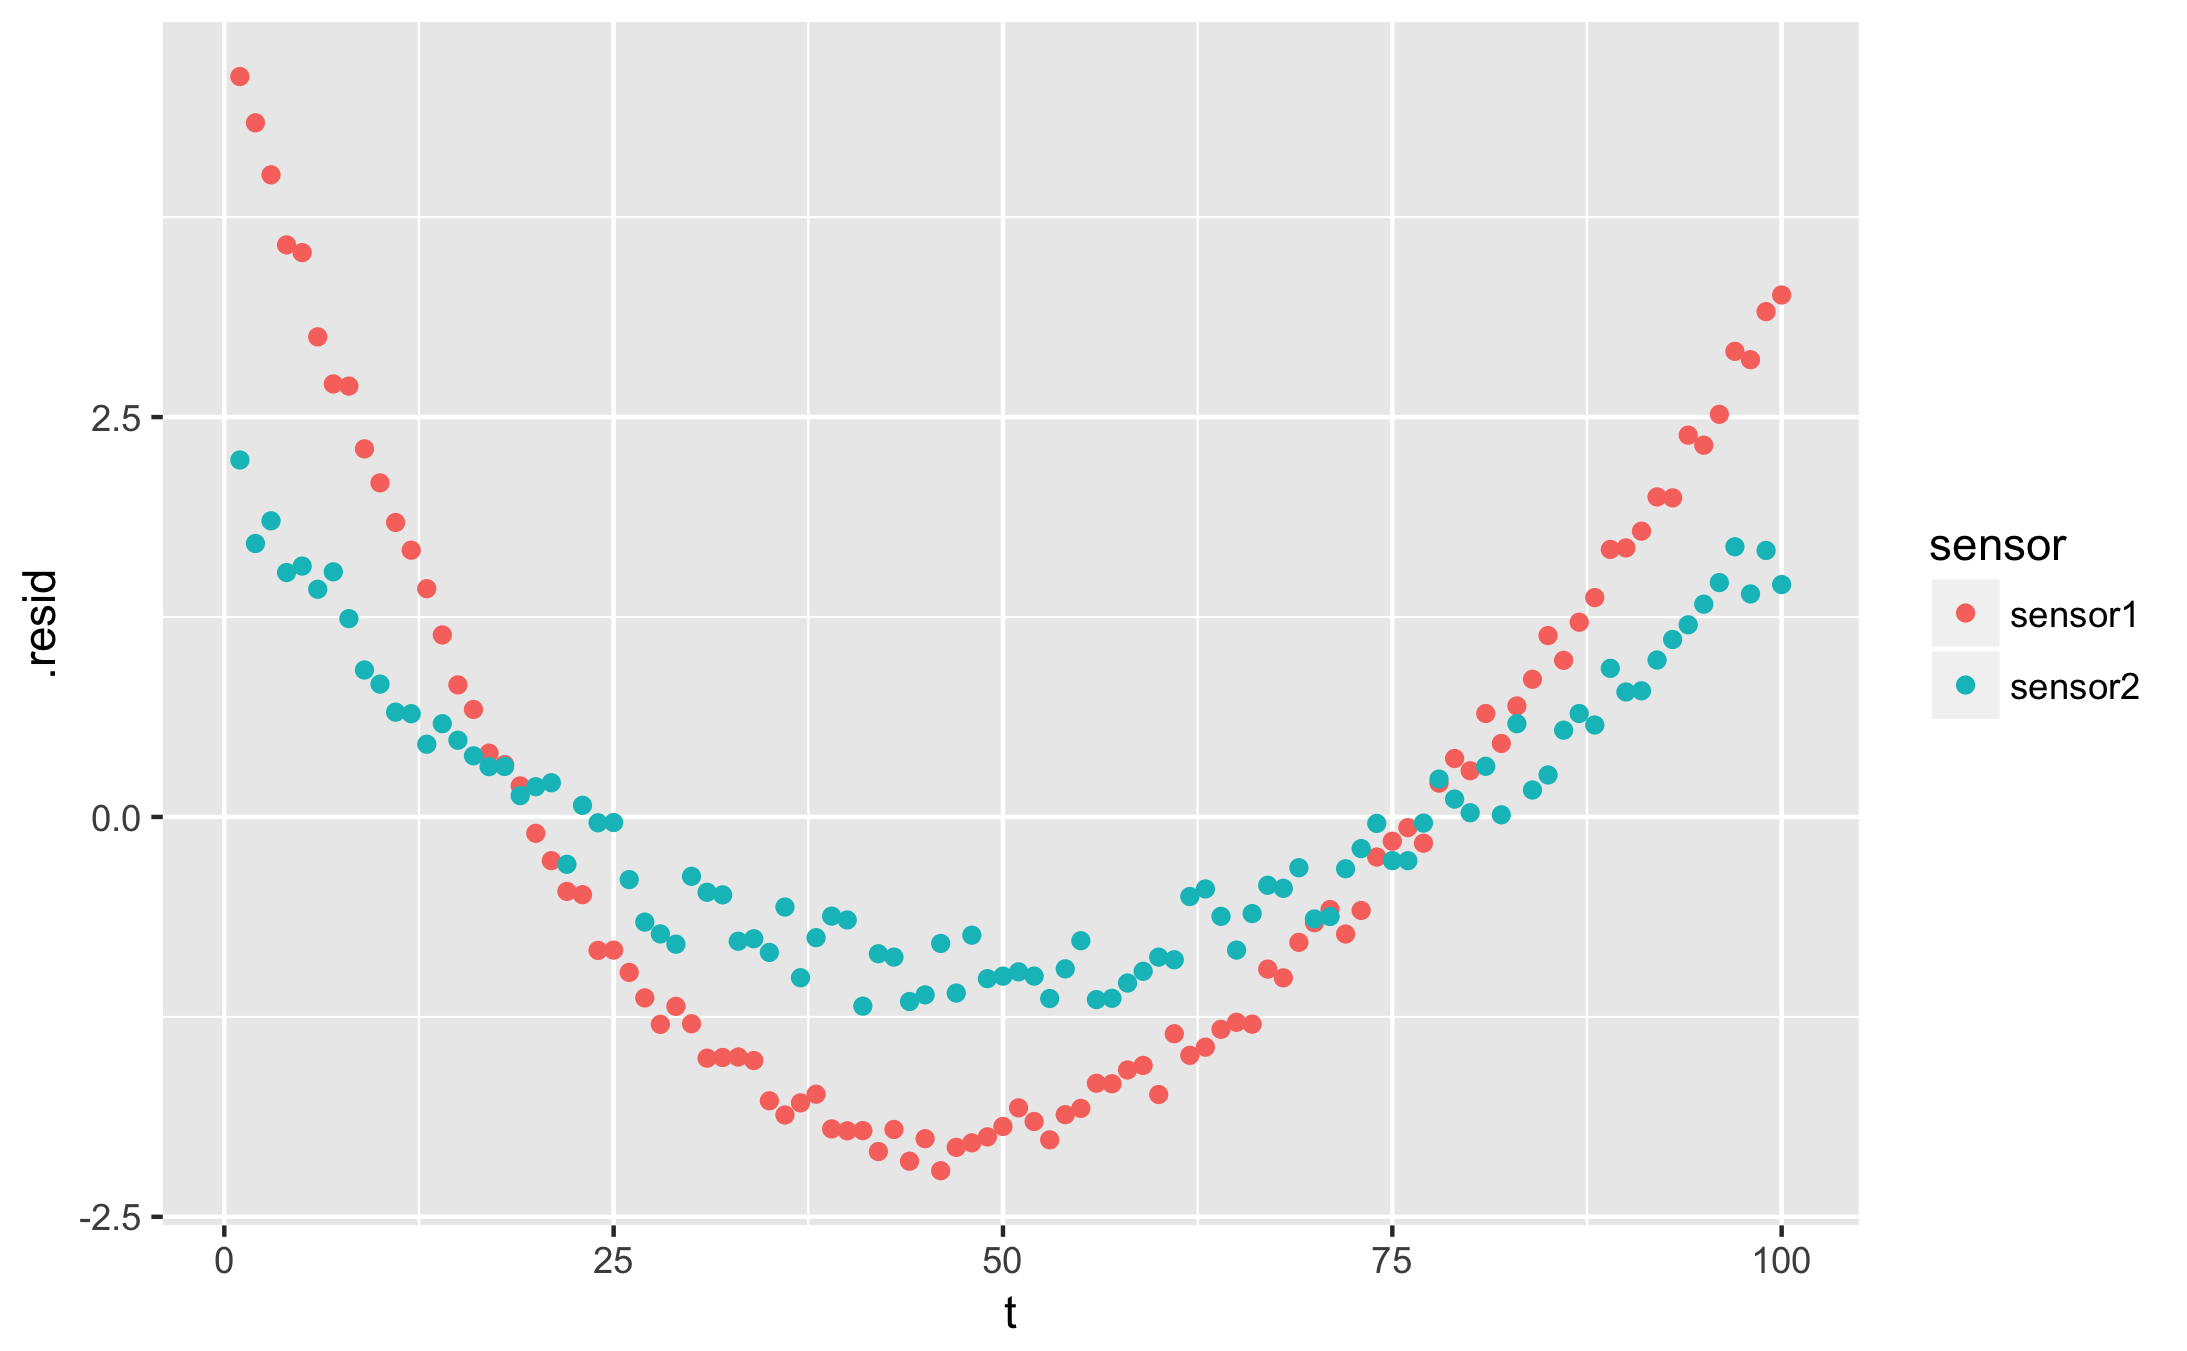 Curve fitting on batches in the tidyverse: R, dplyr, and